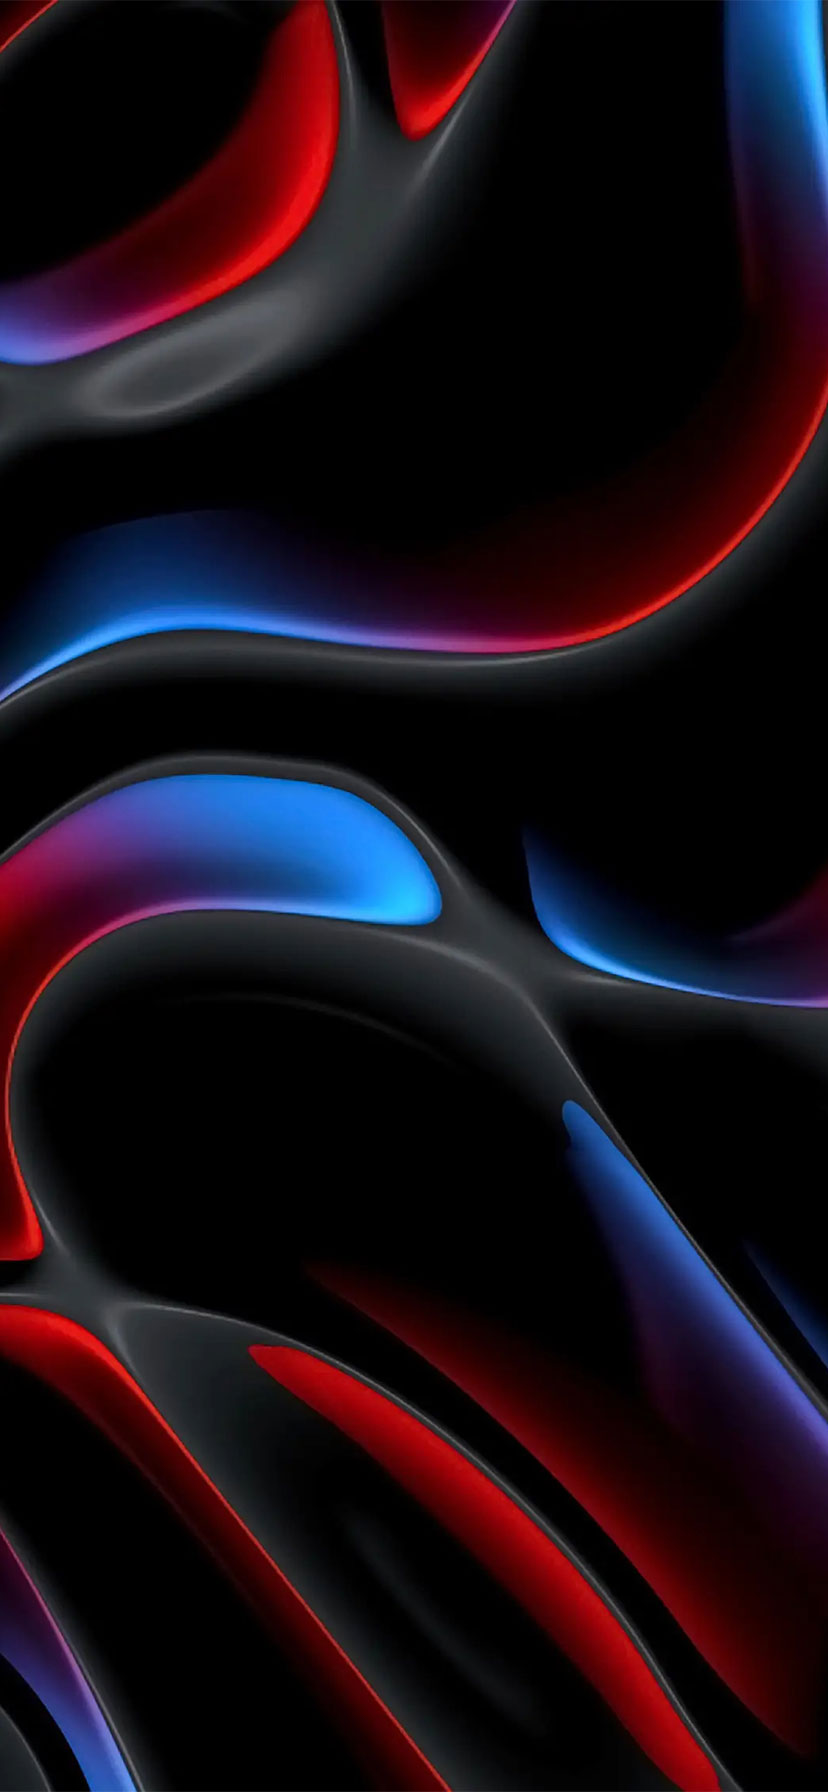 60 Latest High Quality Iphone 11 Wallpapers Backgrounds For Everyone Designbolts